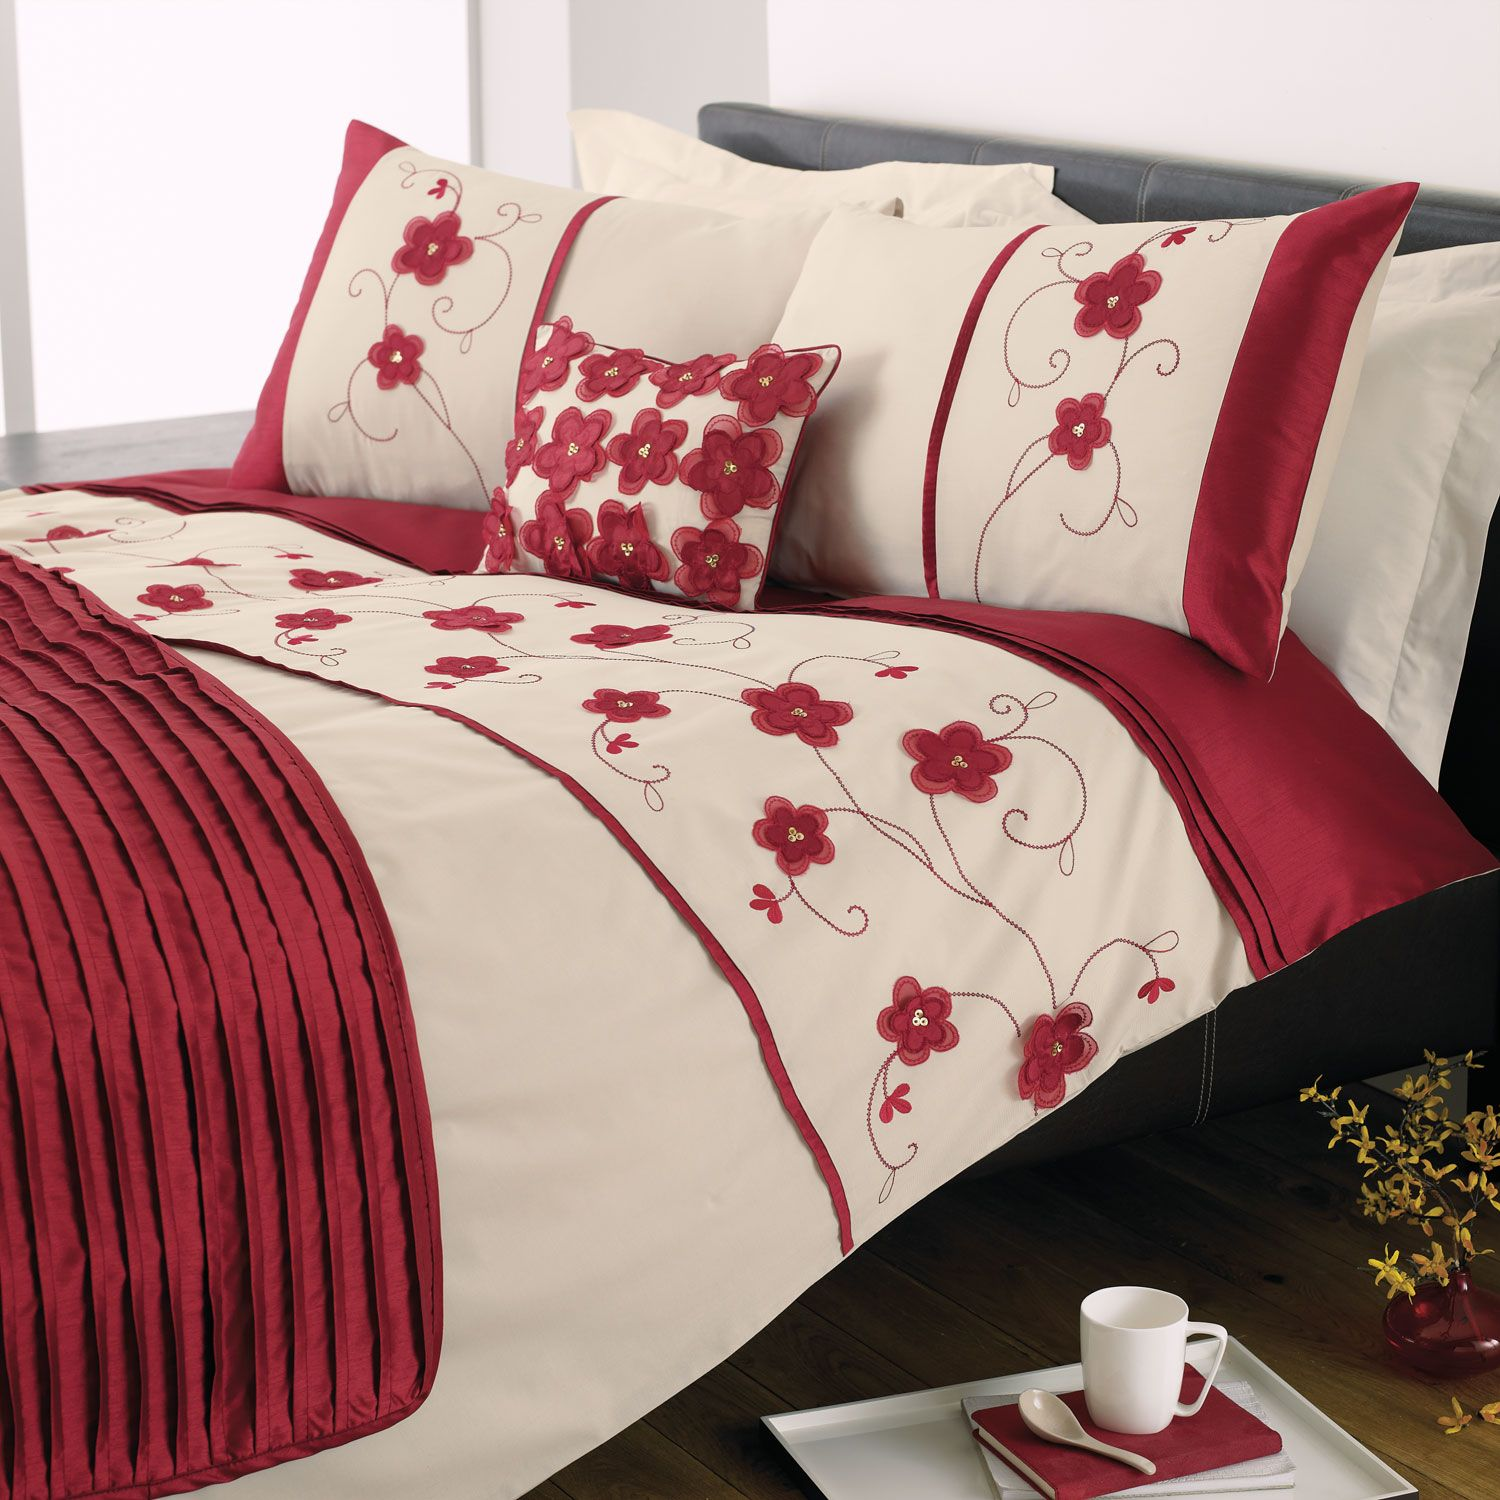 Cheap Doona Covers Macy Floral Duvet Cover Sets Red Super King Bedroom